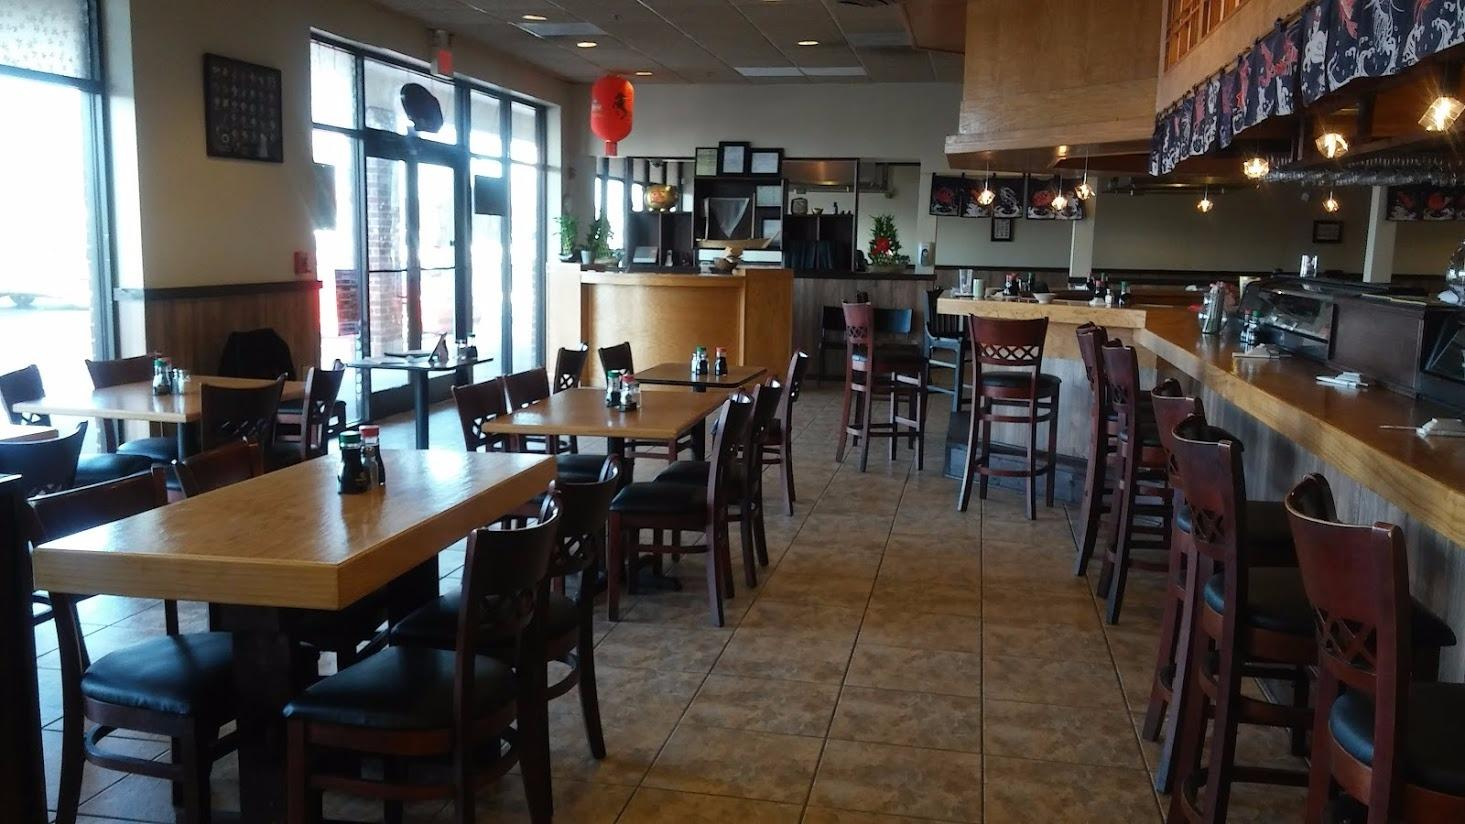 Local Restaurants Near Me: Yosi Japanese Seafood & Steak House Coupons Near Me In